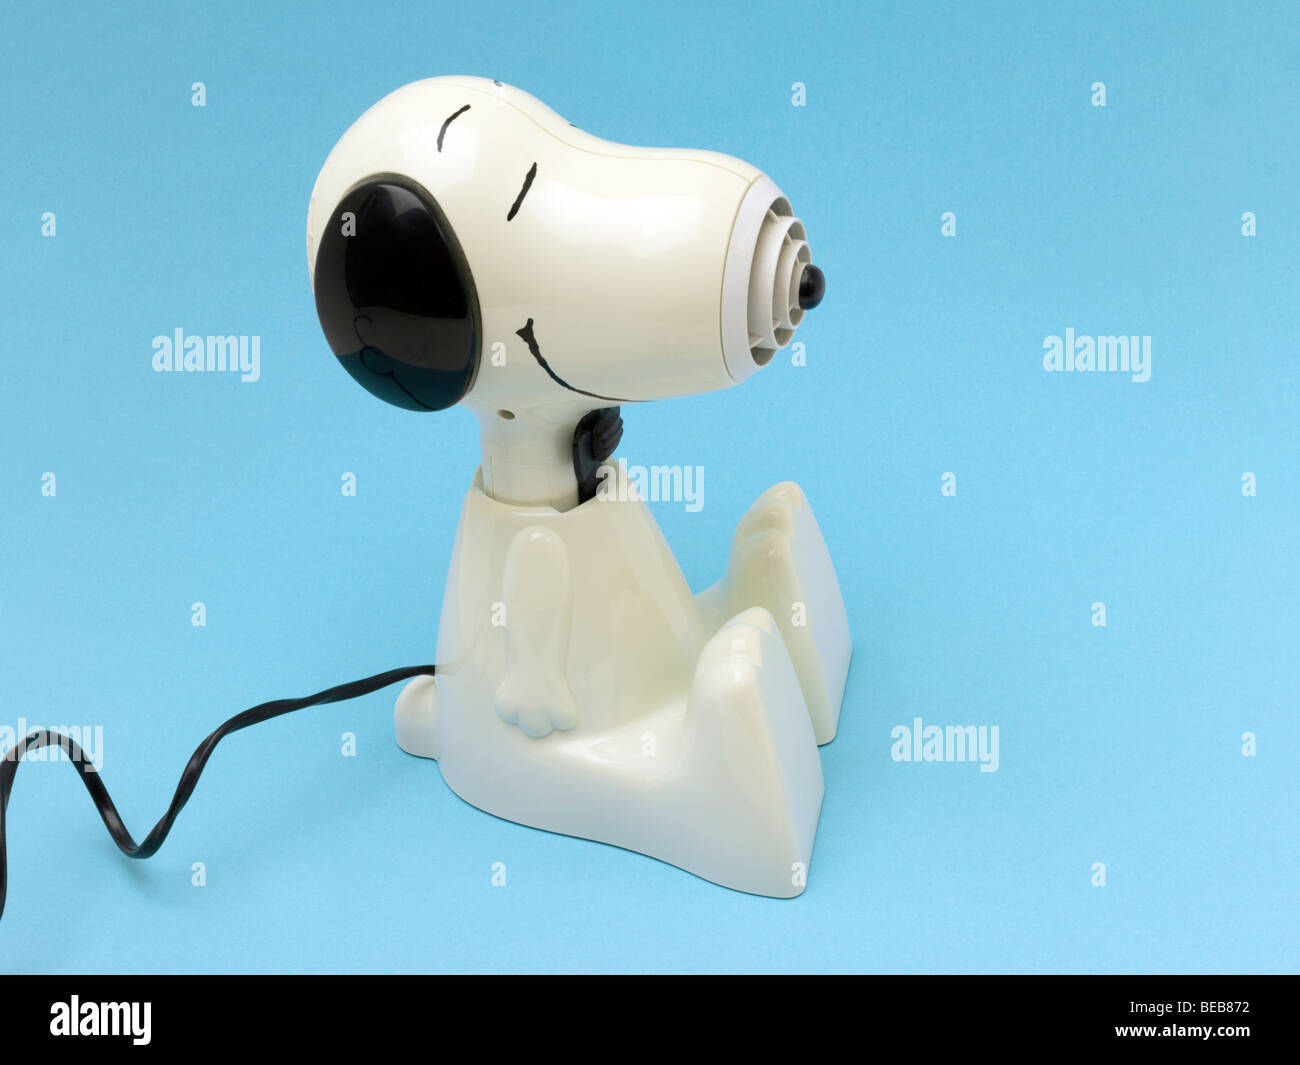 Snoopy Hairdryer Stock Photo: 26063494